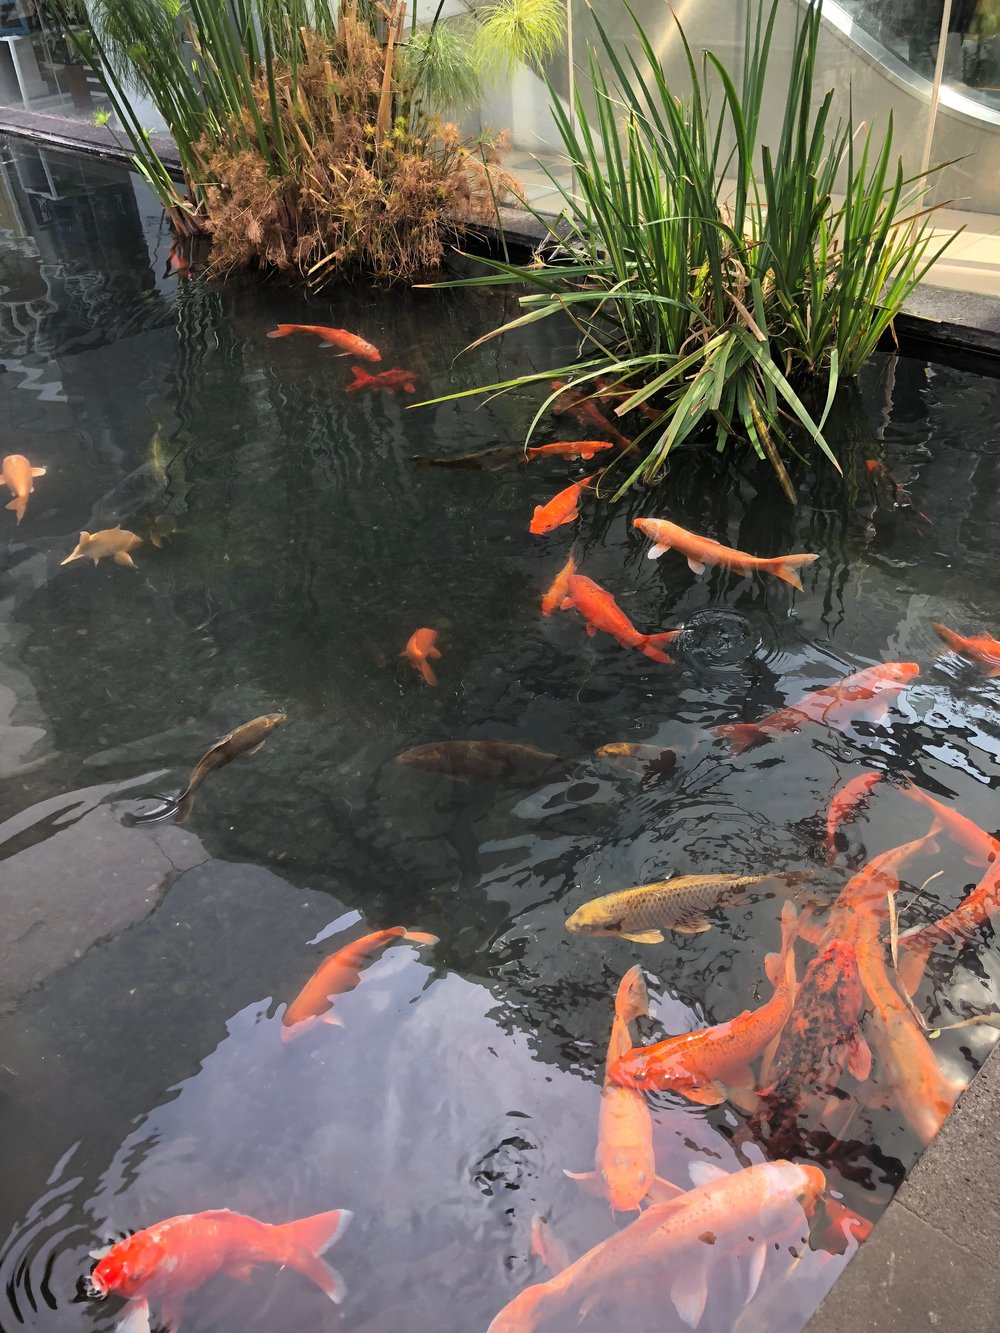 Koi pond inside the mall - very bougie!